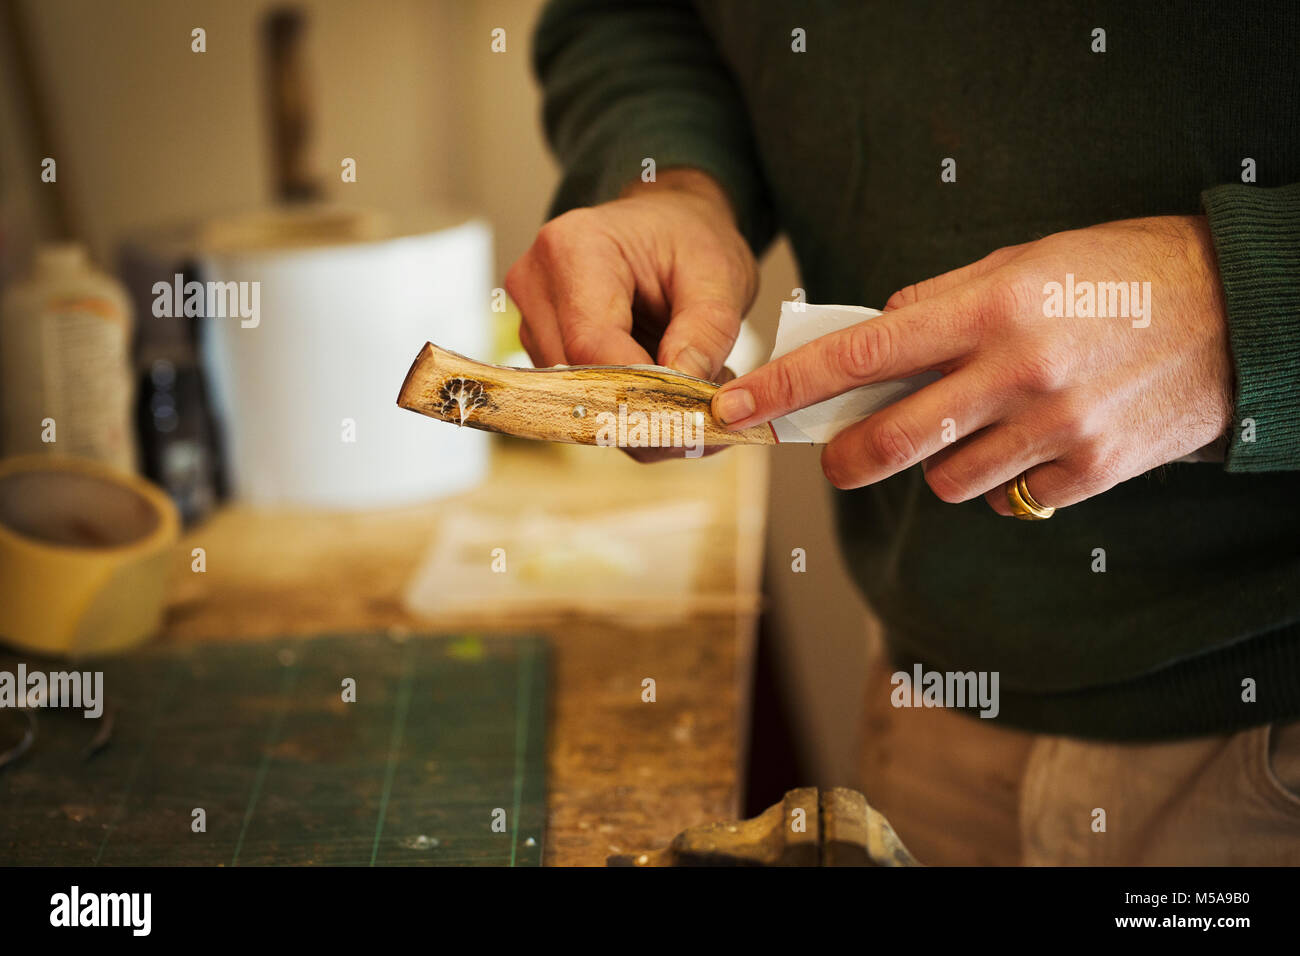 Close up of a craftsman fixing a smooth shaped wooden handle onto a newly made knife blade. - Stock Image